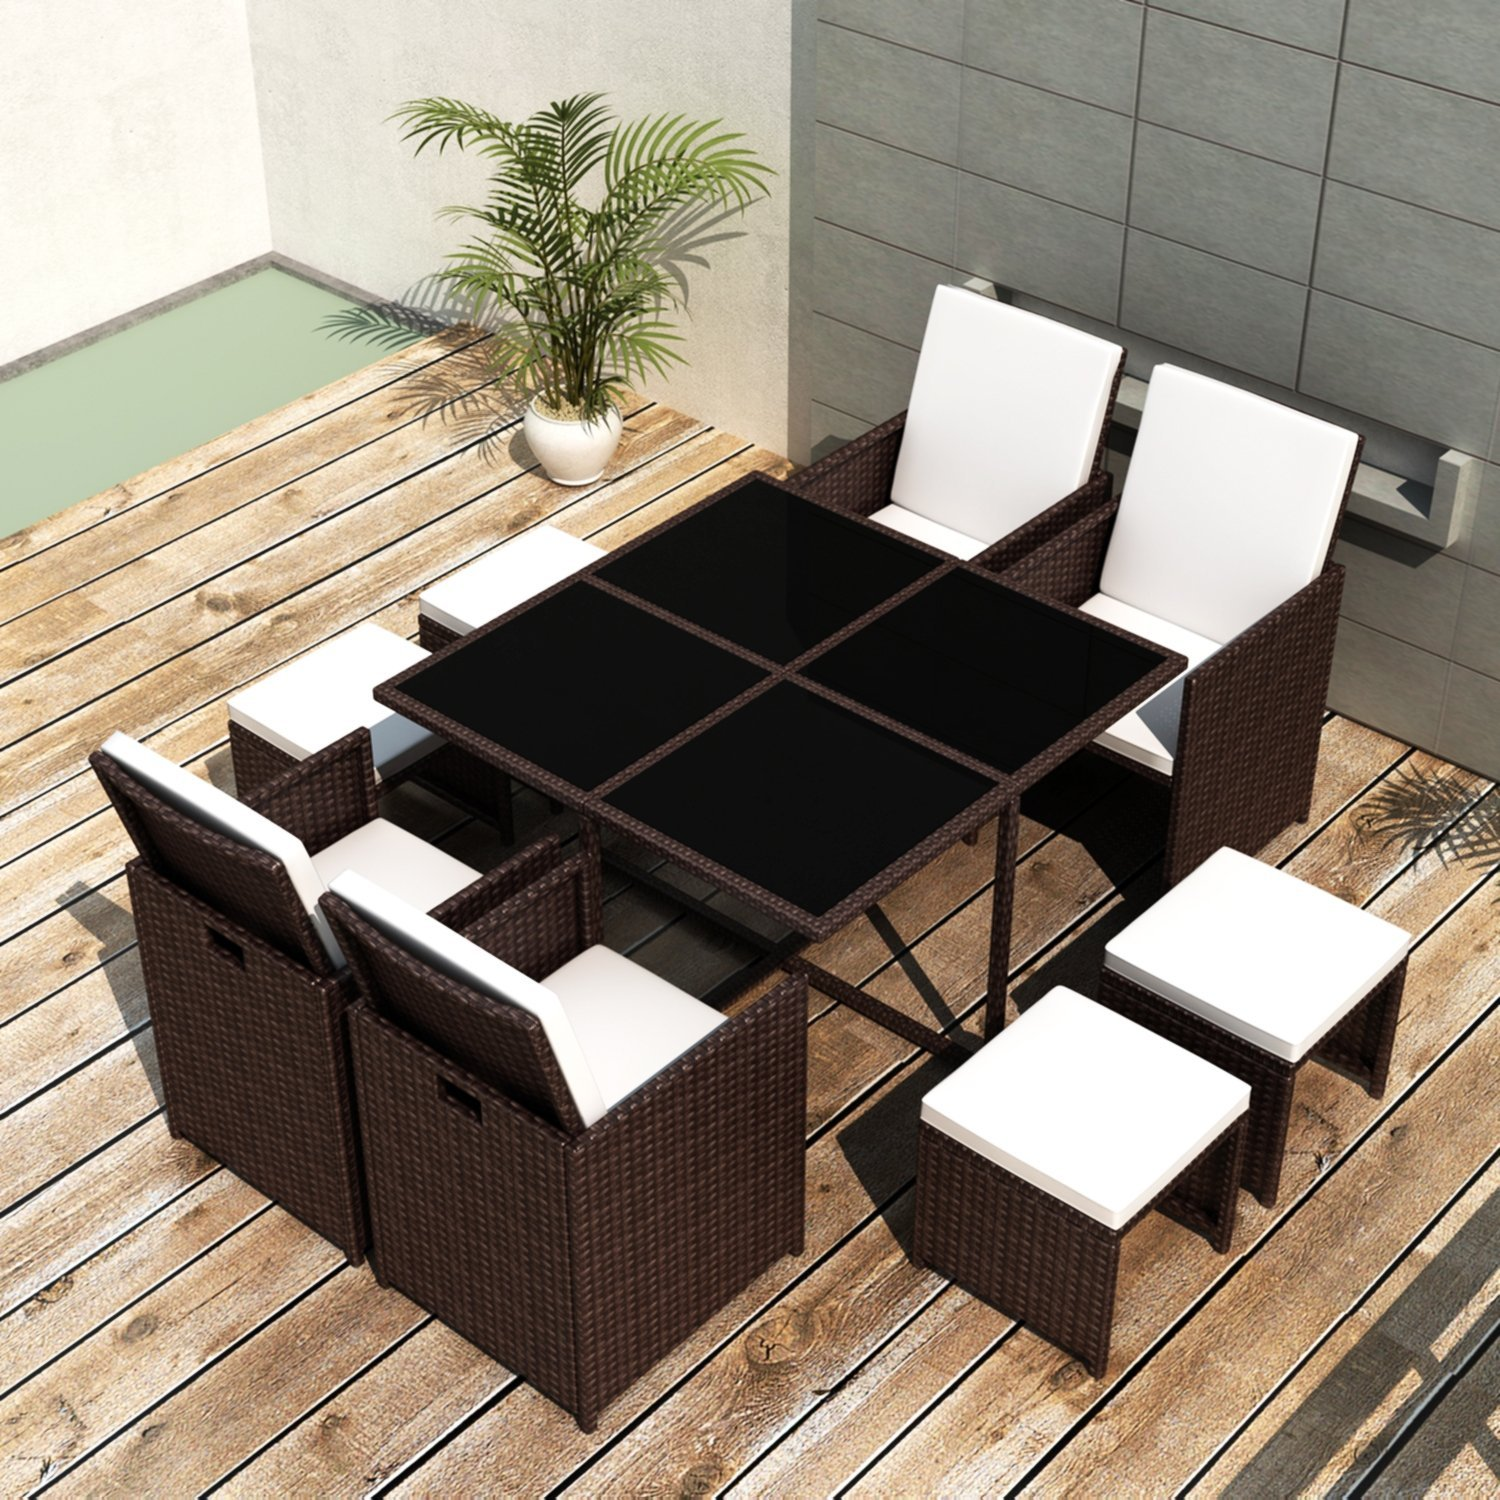 ssitg poly rattan gartenm bel essgruppe gartengarnitur set sitzgruppe sessel lounge g nstig. Black Bedroom Furniture Sets. Home Design Ideas